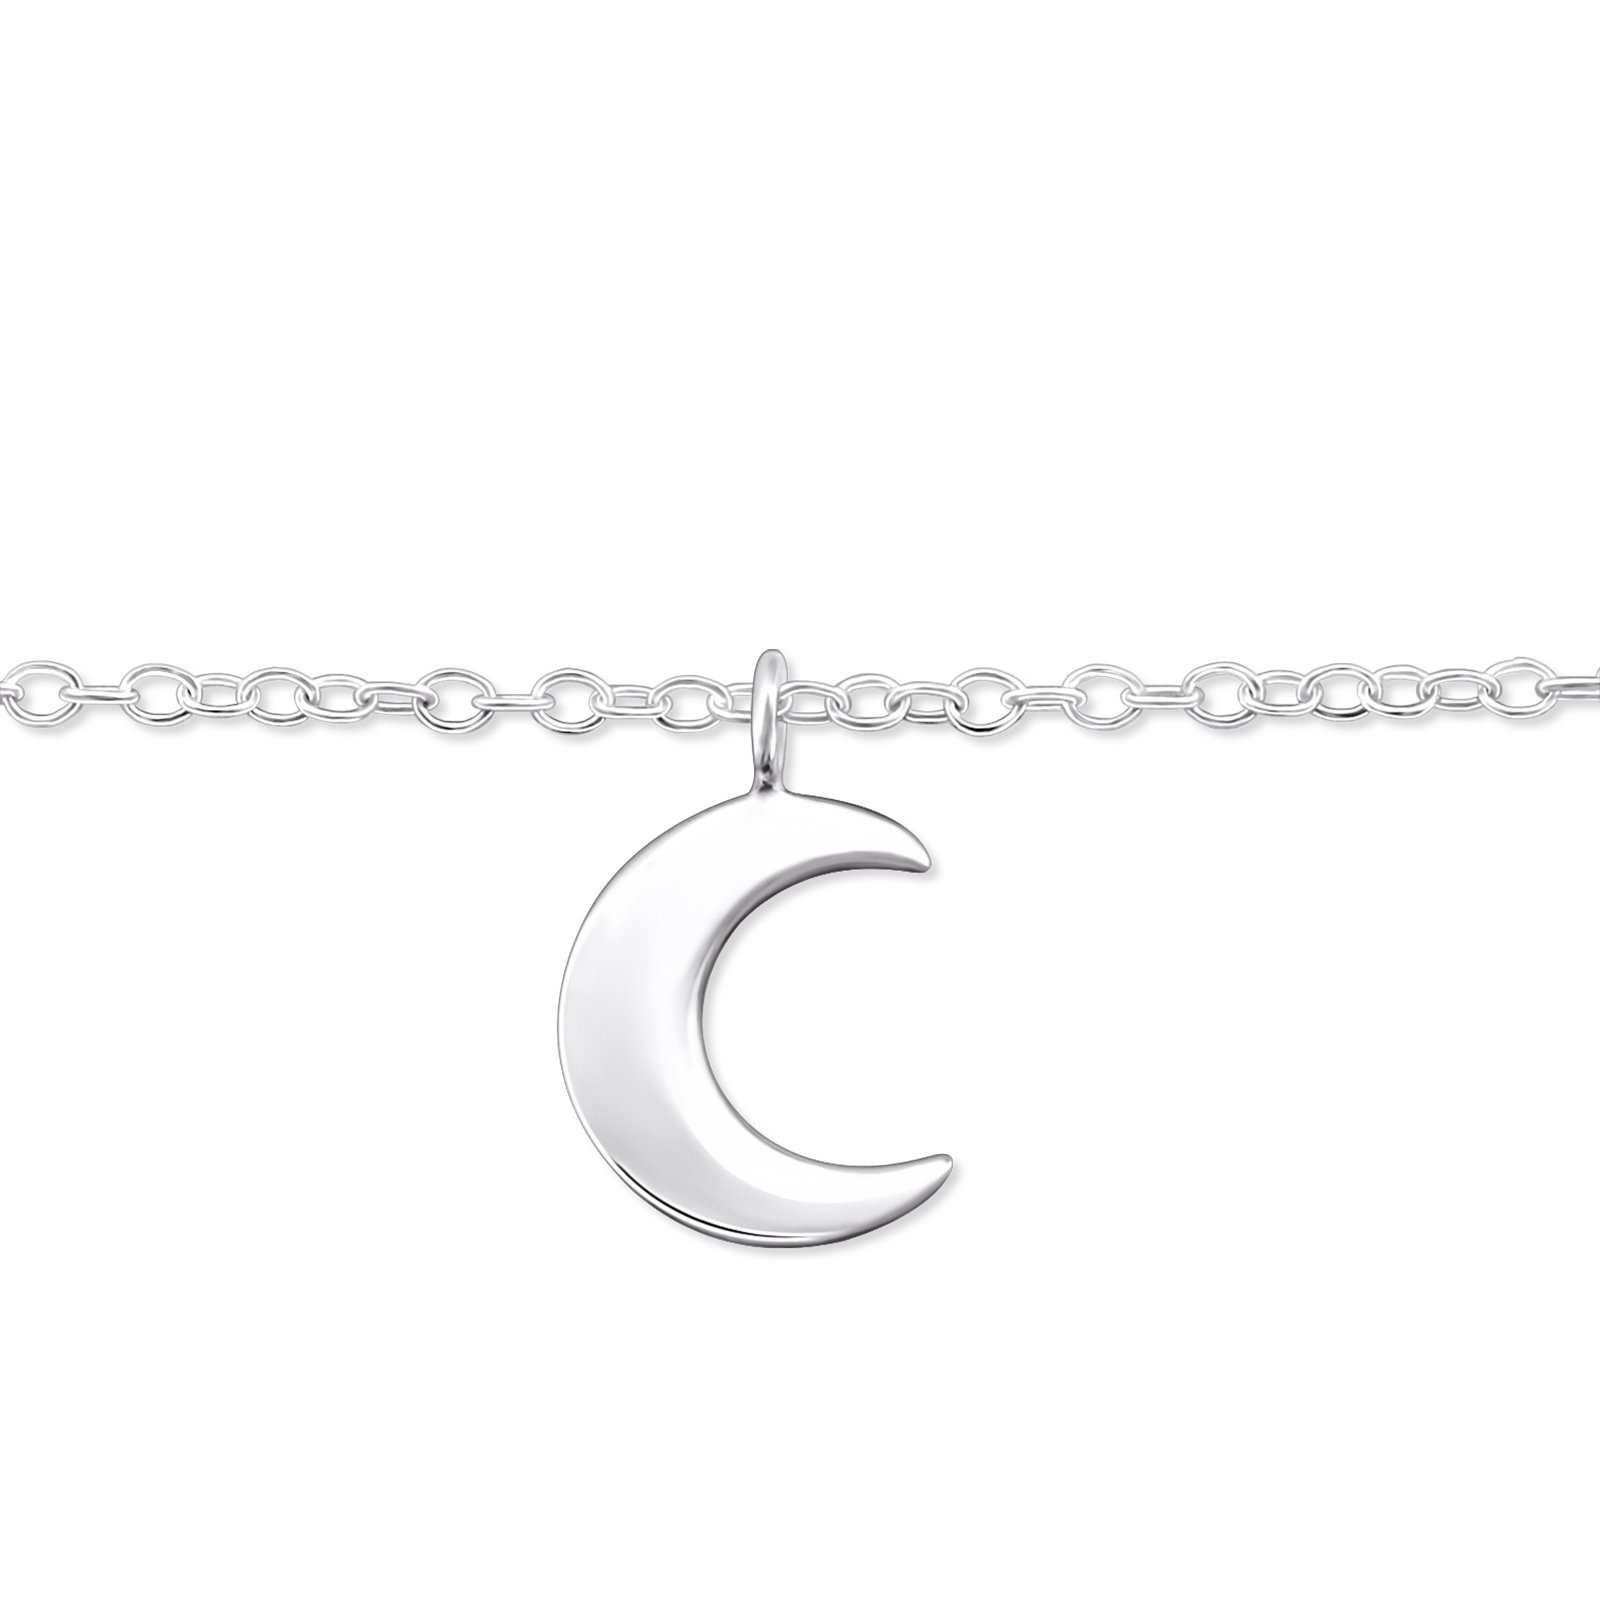 Atik Jewelry Silver Moon Anklet